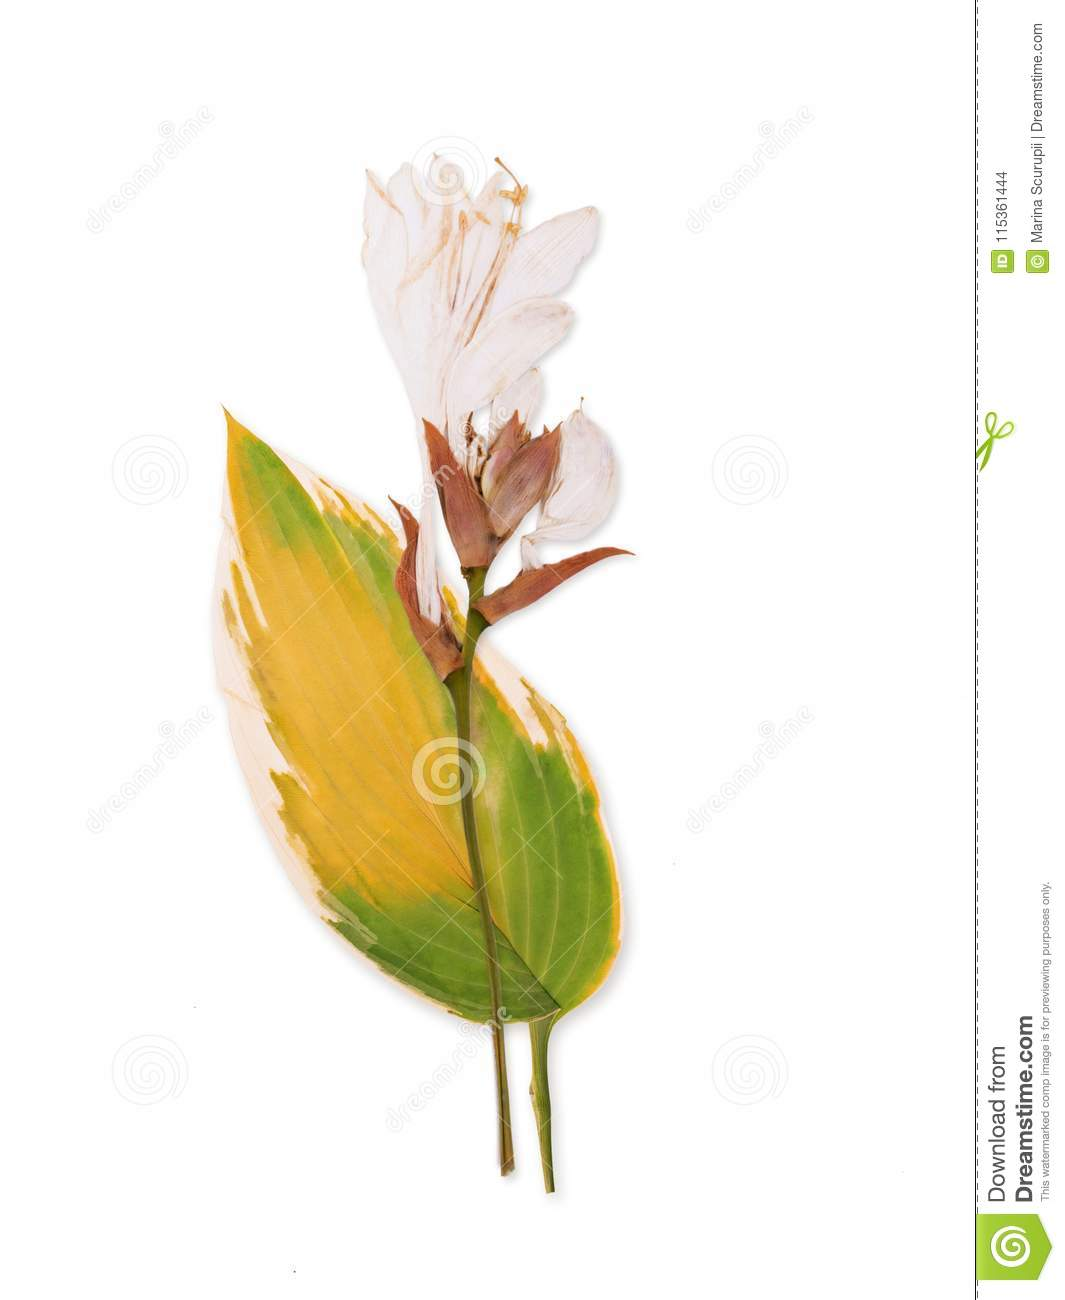 Pressed And Dried Lily Flower Stock Photo Image Of White Delicate